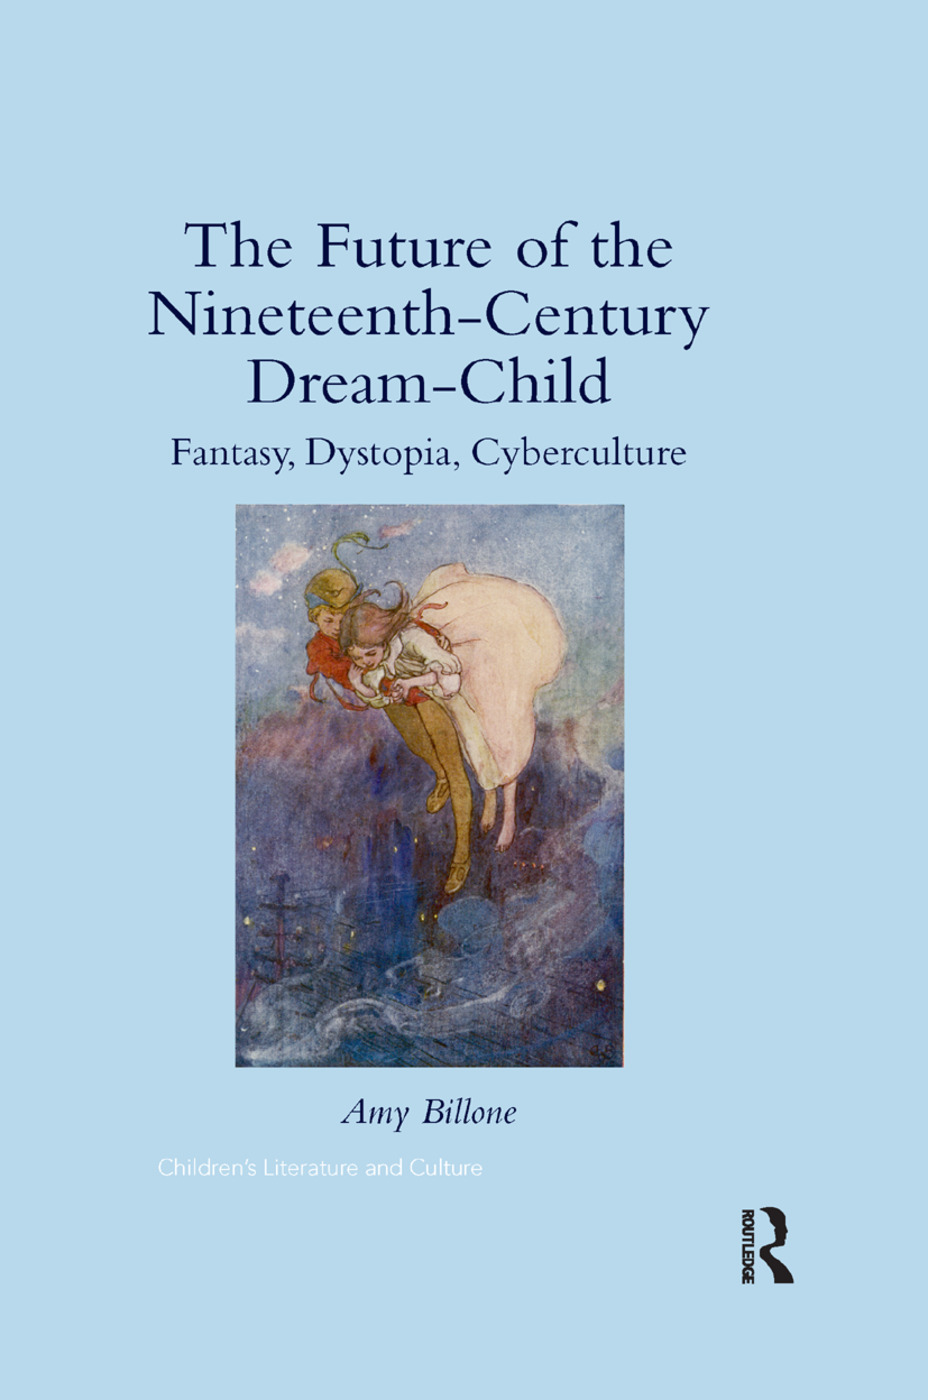 The Future of the Nineteenth-Century Dream-Child: Fantasy, Dystopia, Cyberculture, 1st Edition (Paperback) book cover